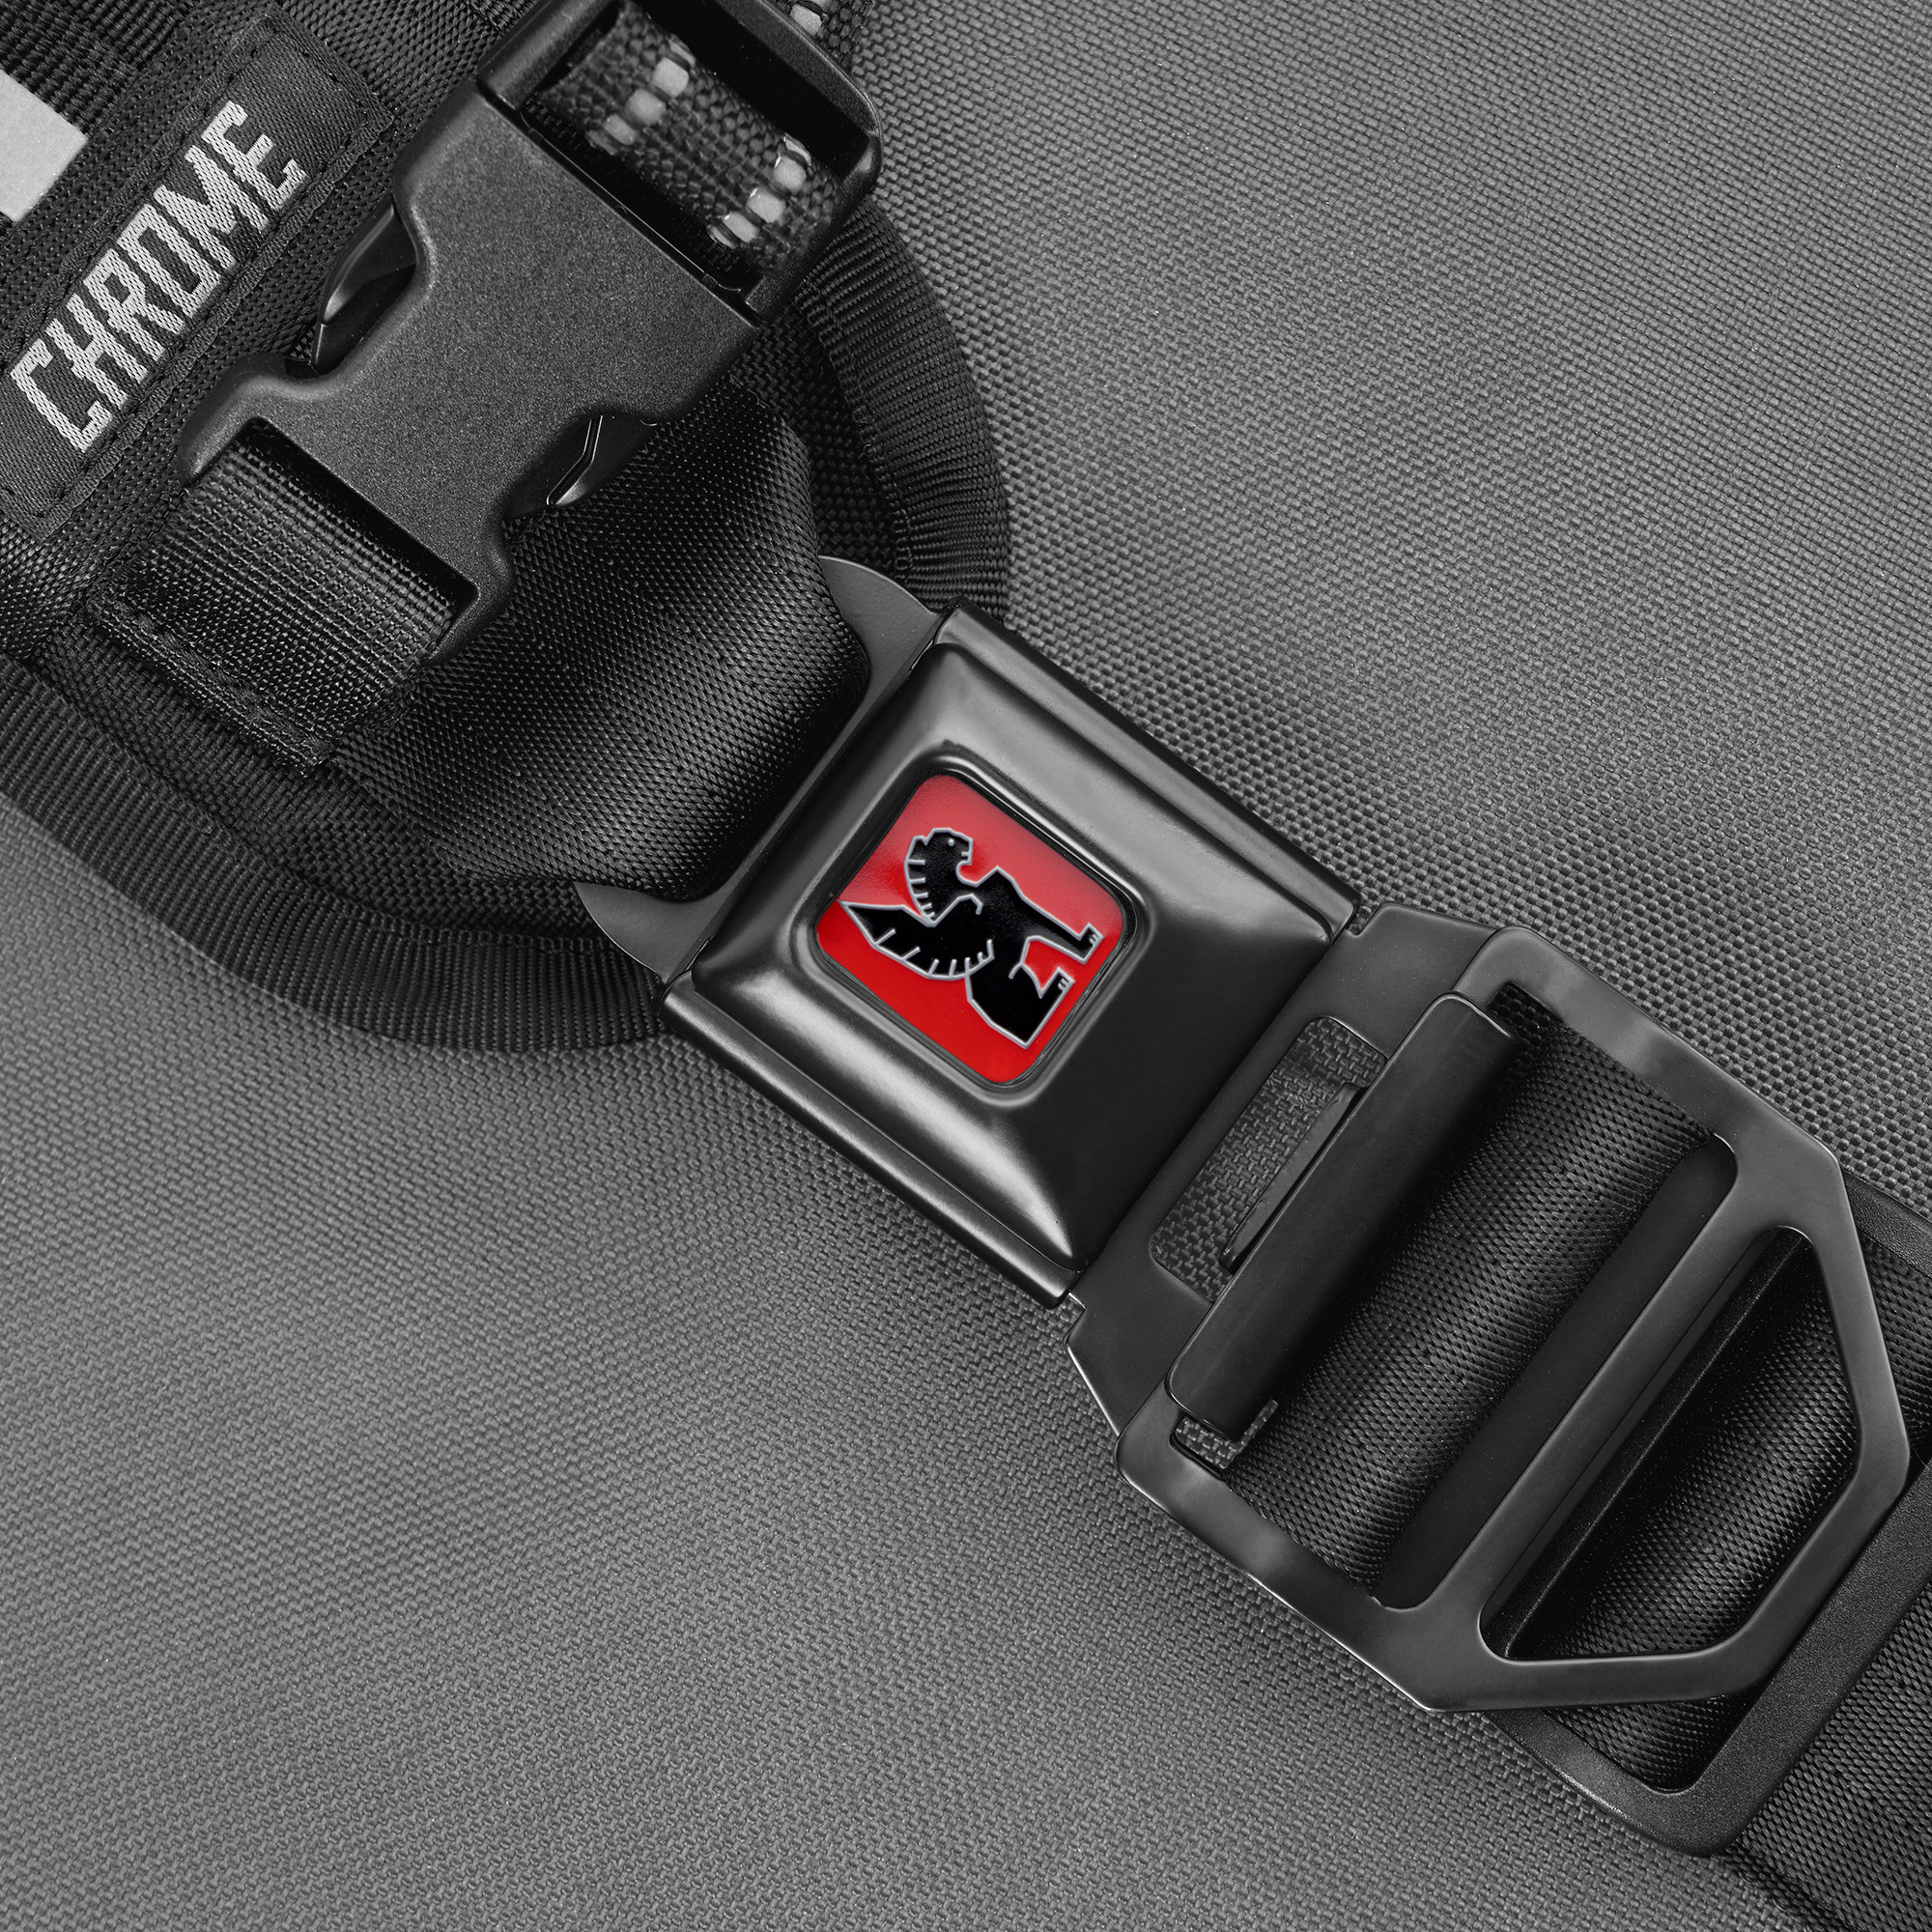 Chrome Industries Warsaw is for Photographers